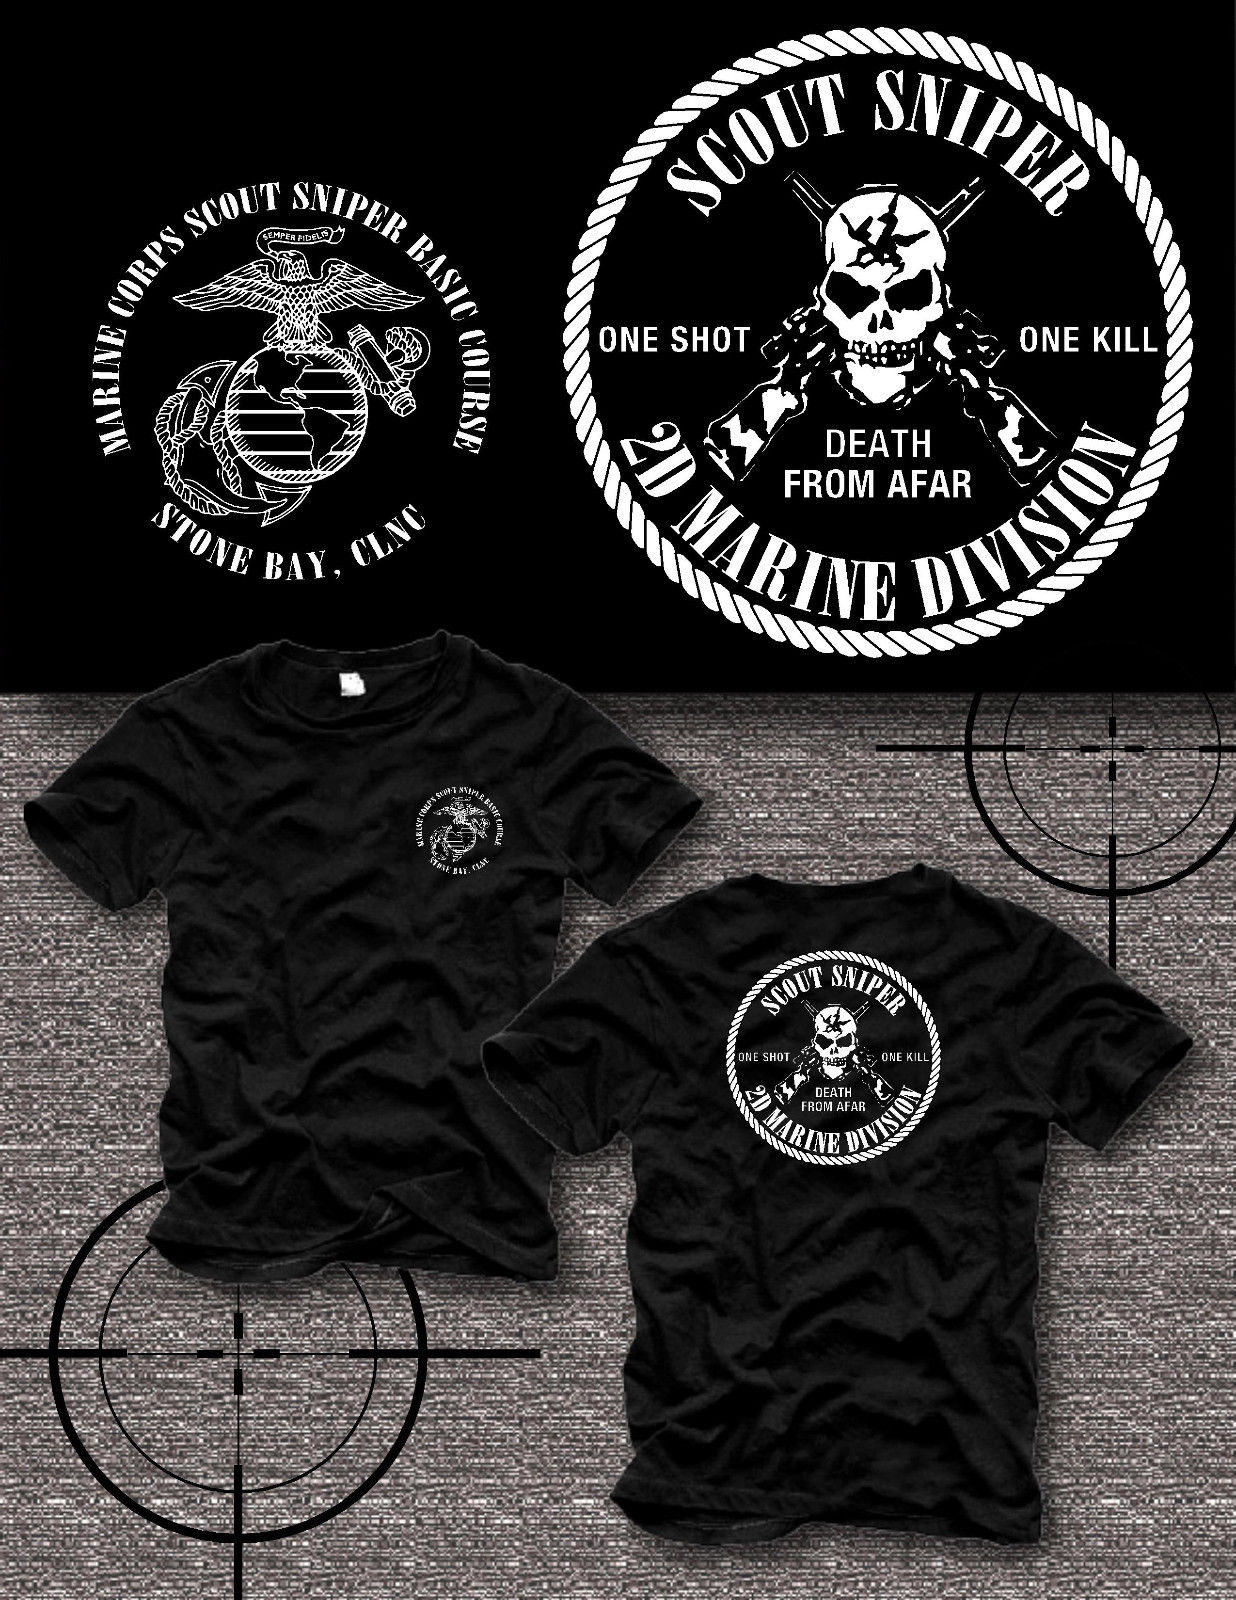 2018 Hot sale Marine Corps Camp Lejeune Scout Sniper Basic Course Brand New USMC T- shirt ...